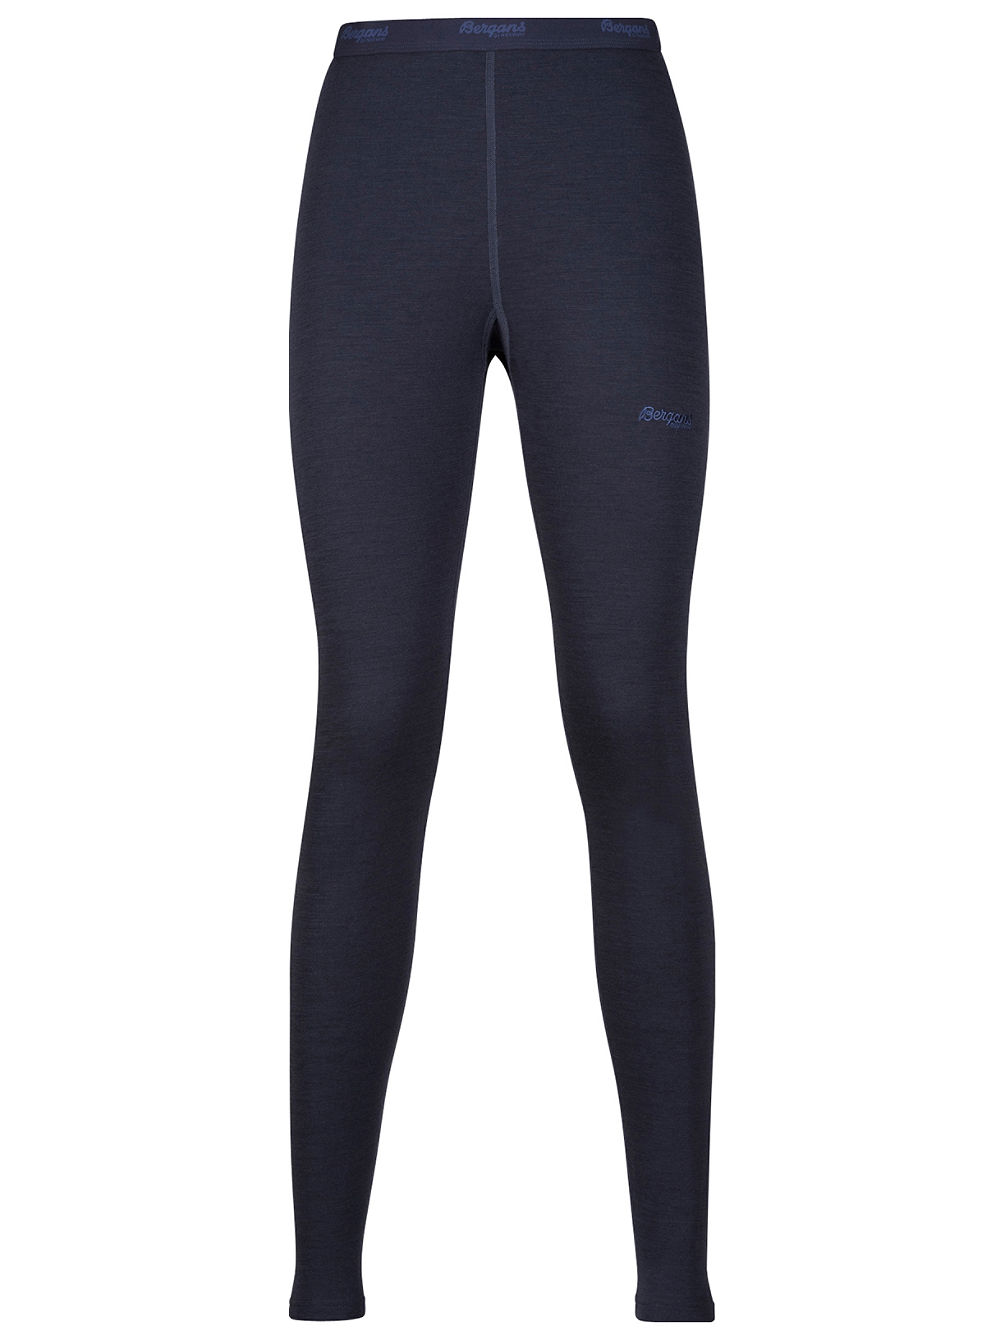 Akeleie Tight Tech Pants